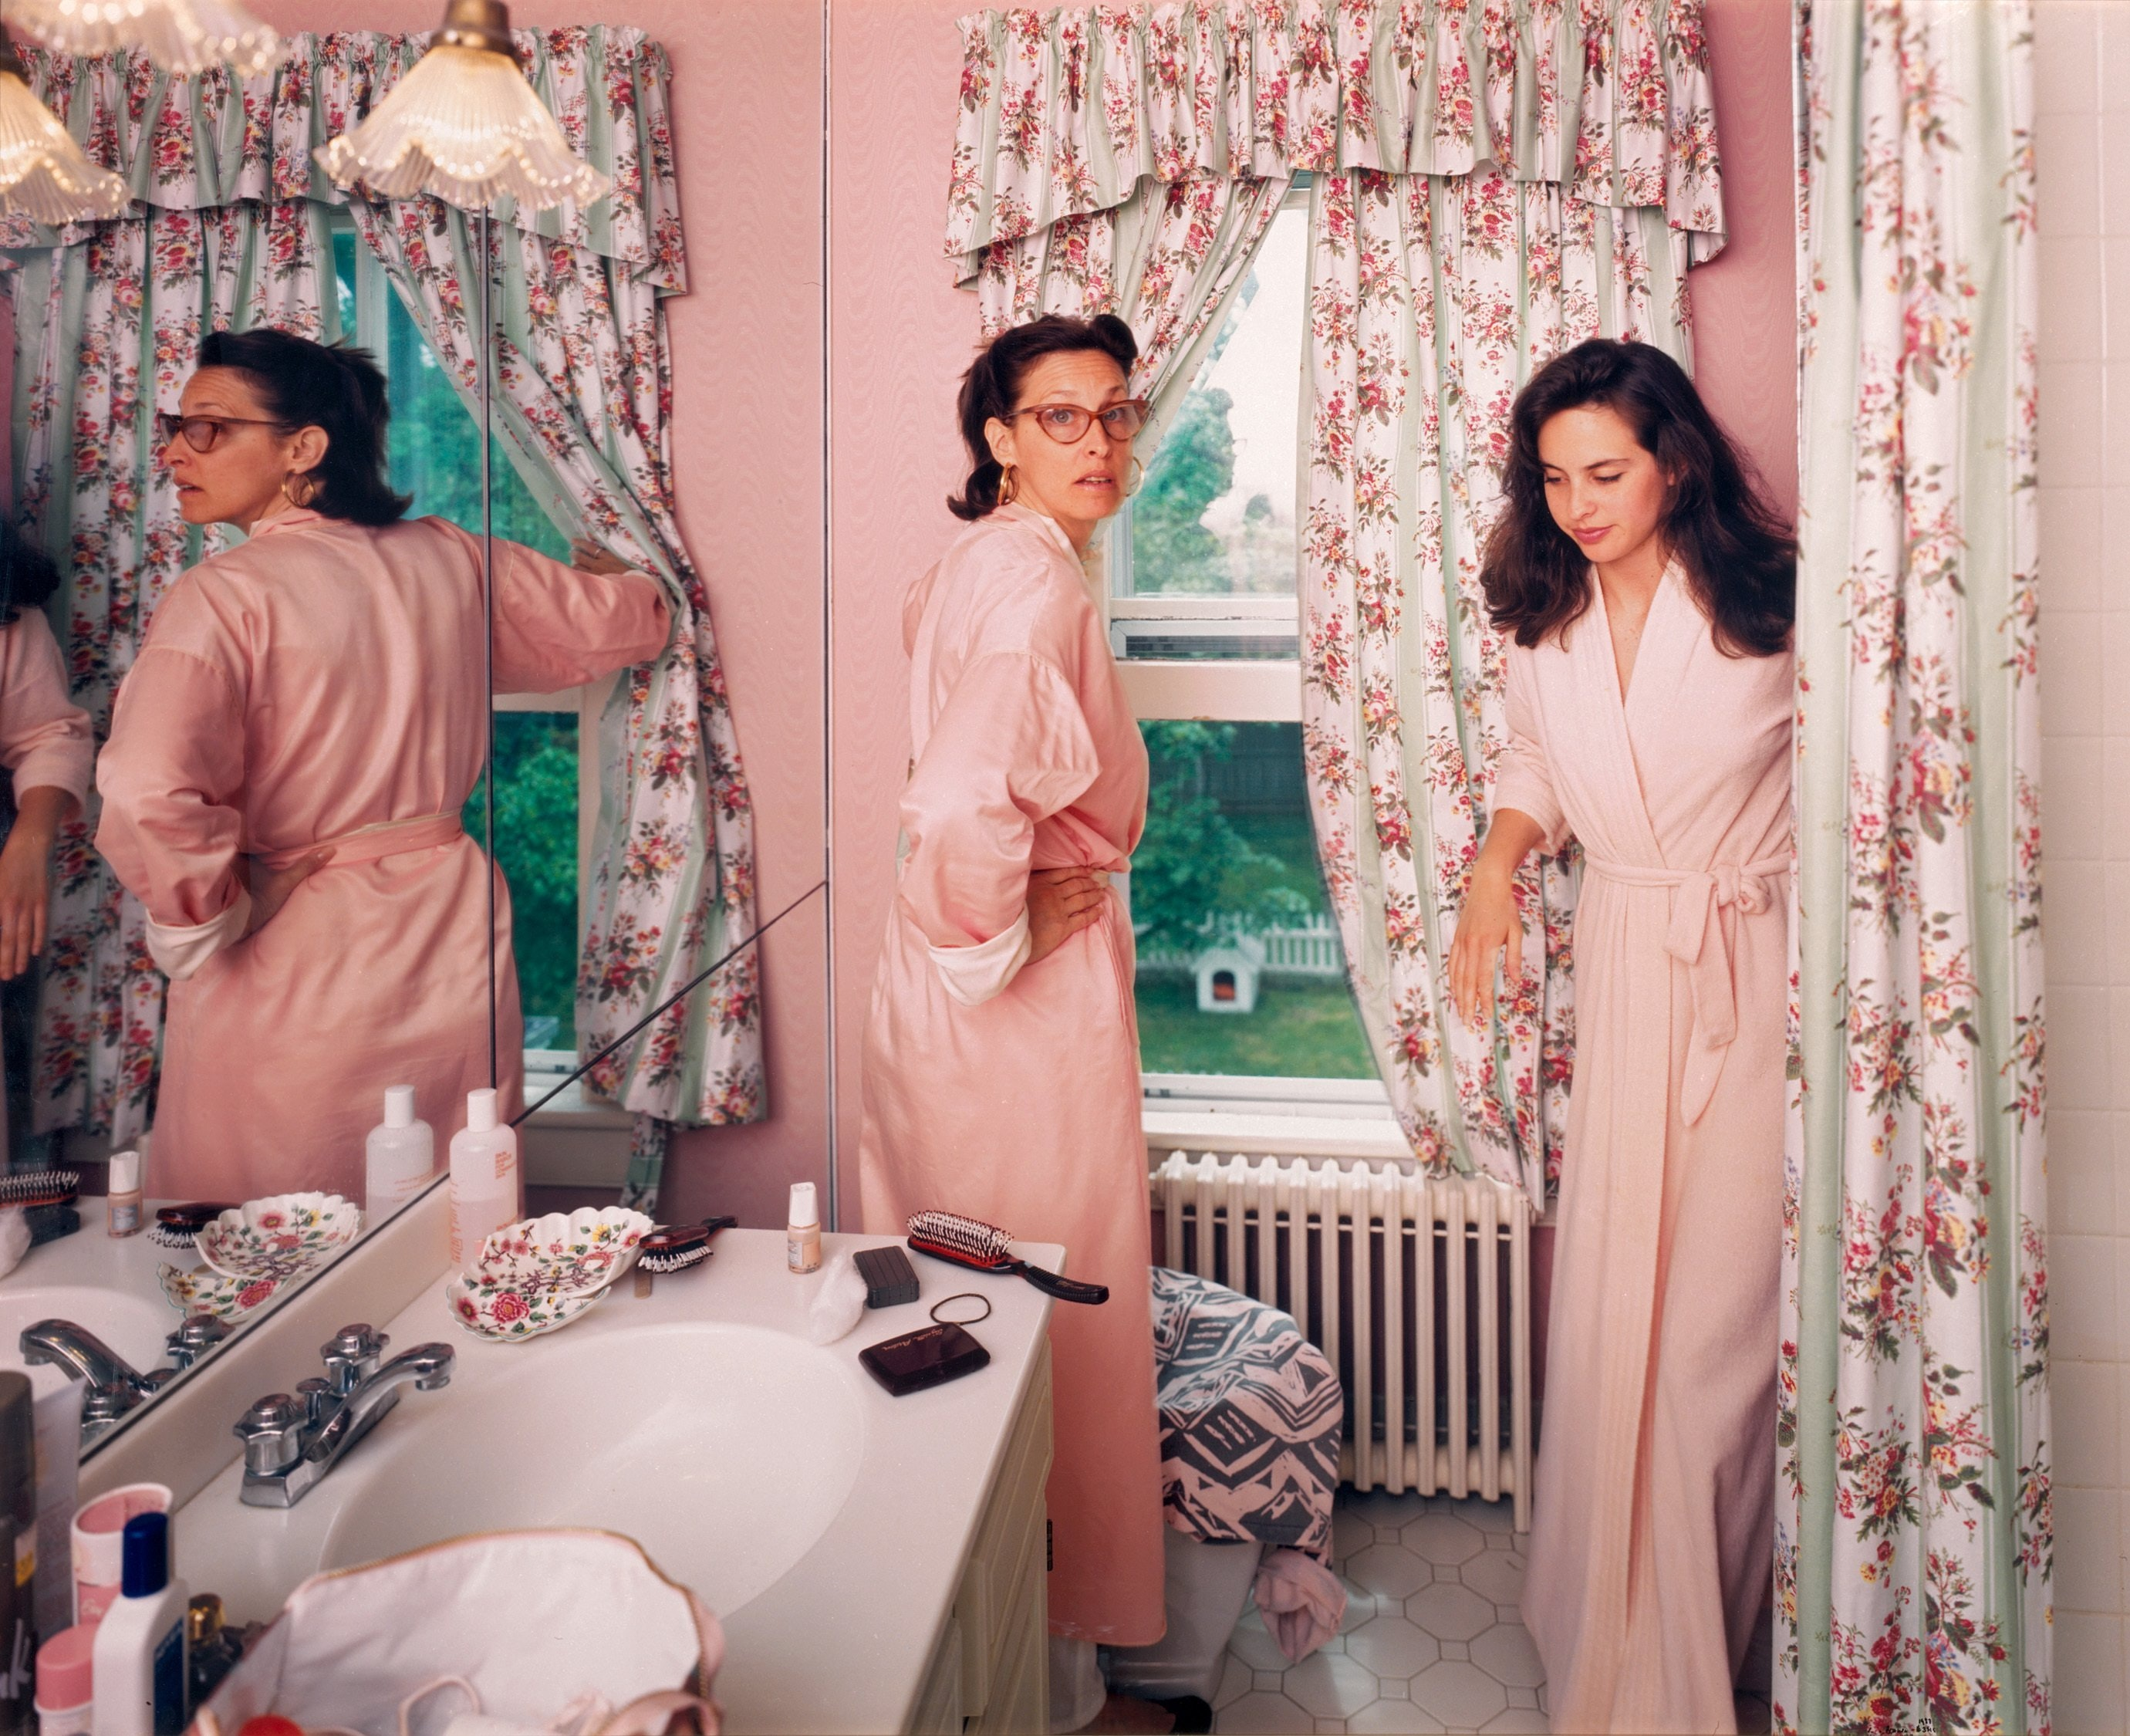 Two women in pink robes get ready in a pink bathroom.